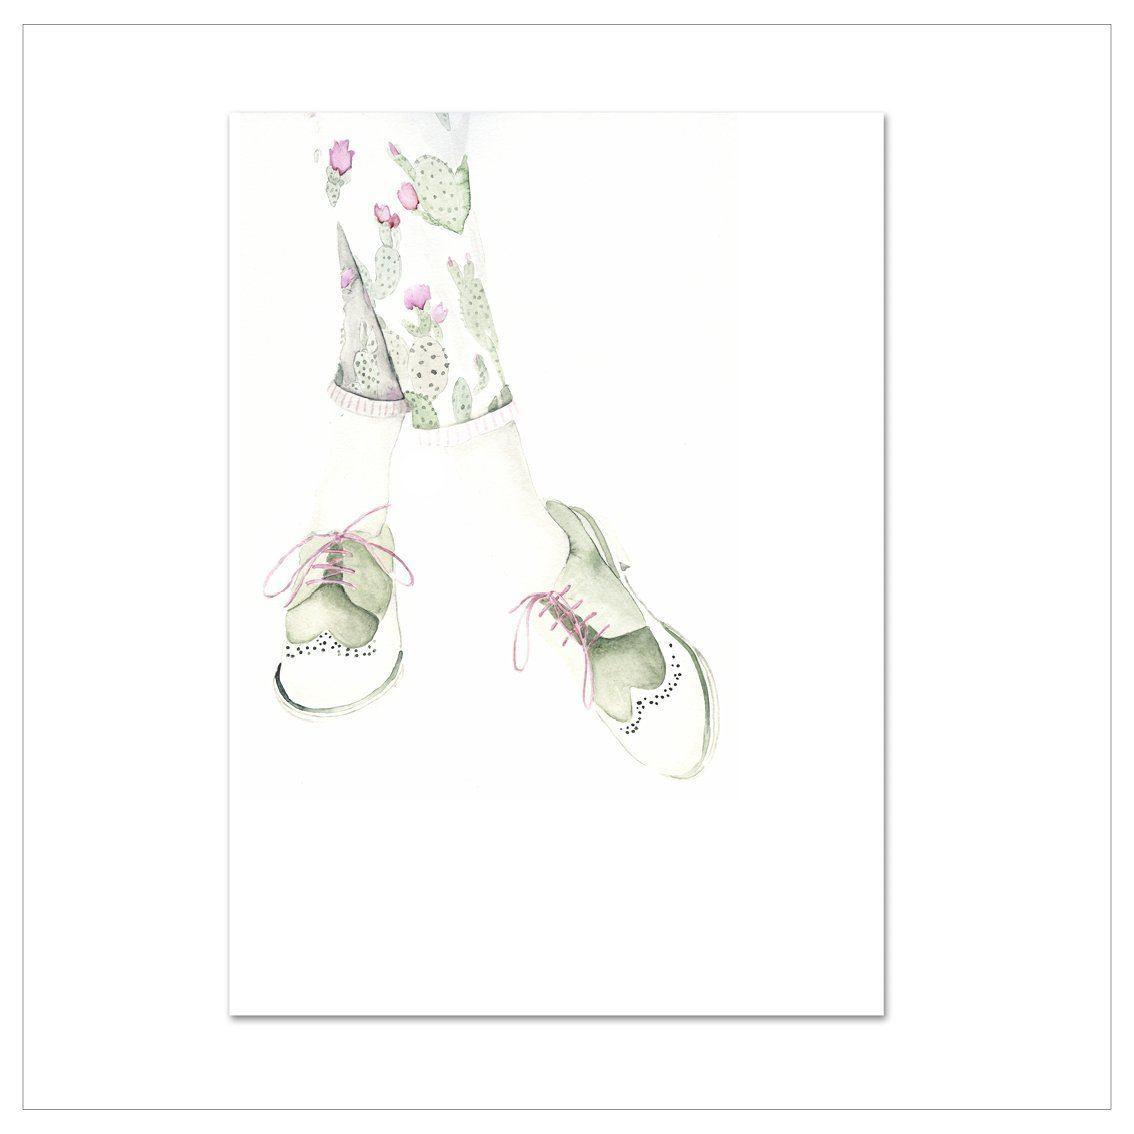 Kunstdruck - GREEN ROSE SHOES Kunstdruck Leo la Douce